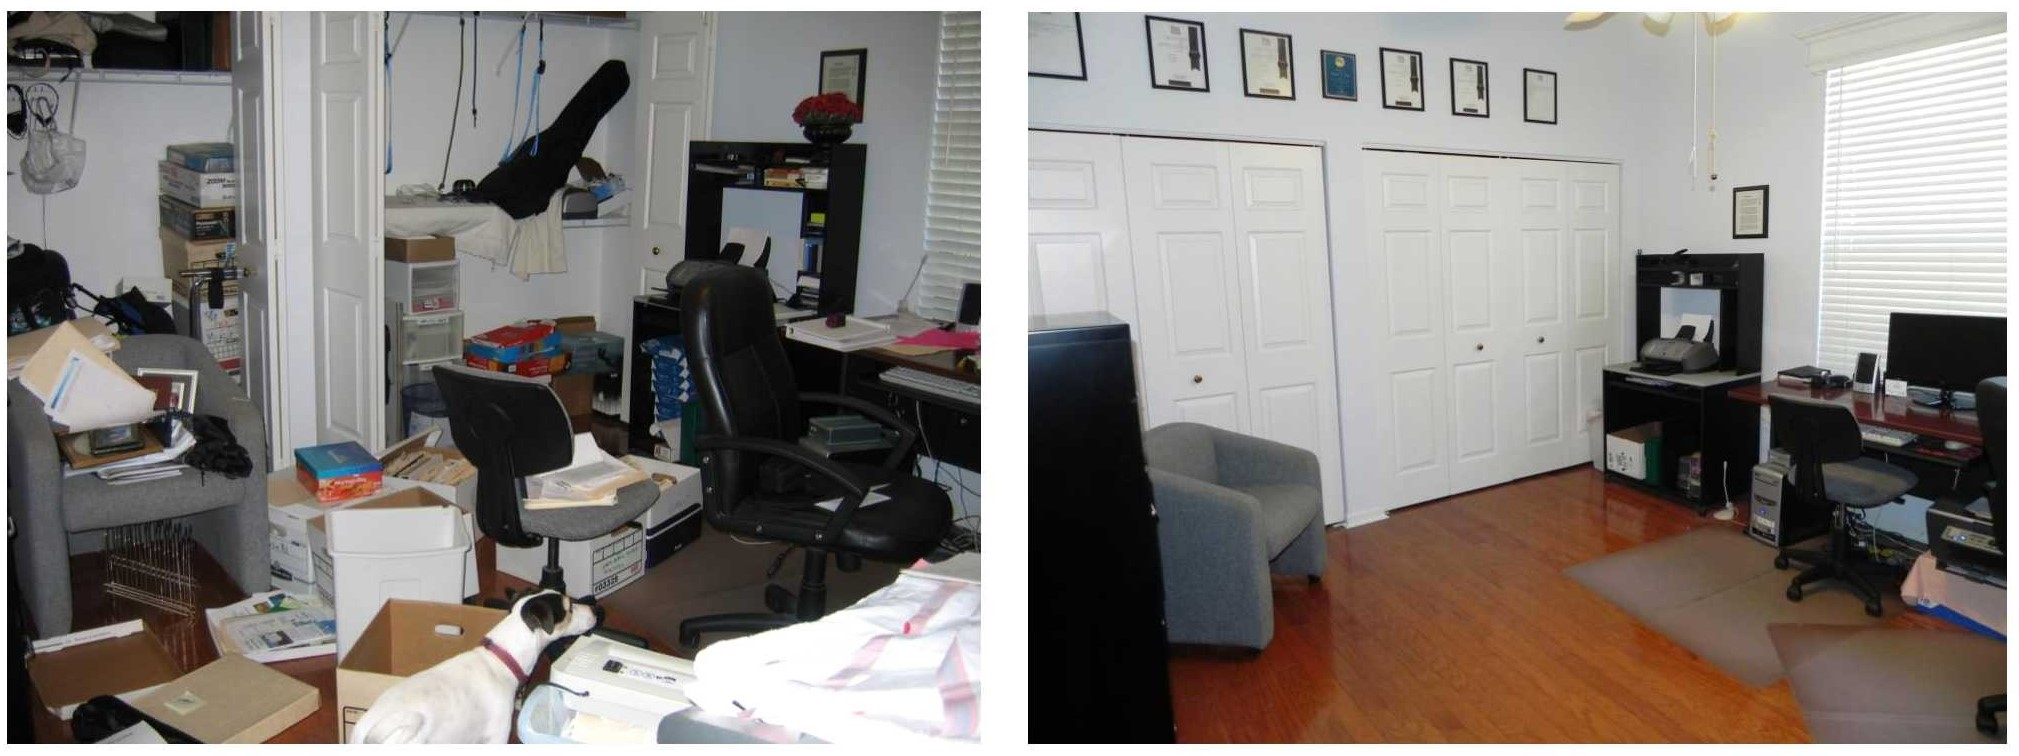 HELPFUL TIPS TO DECLUTTER A ROOM